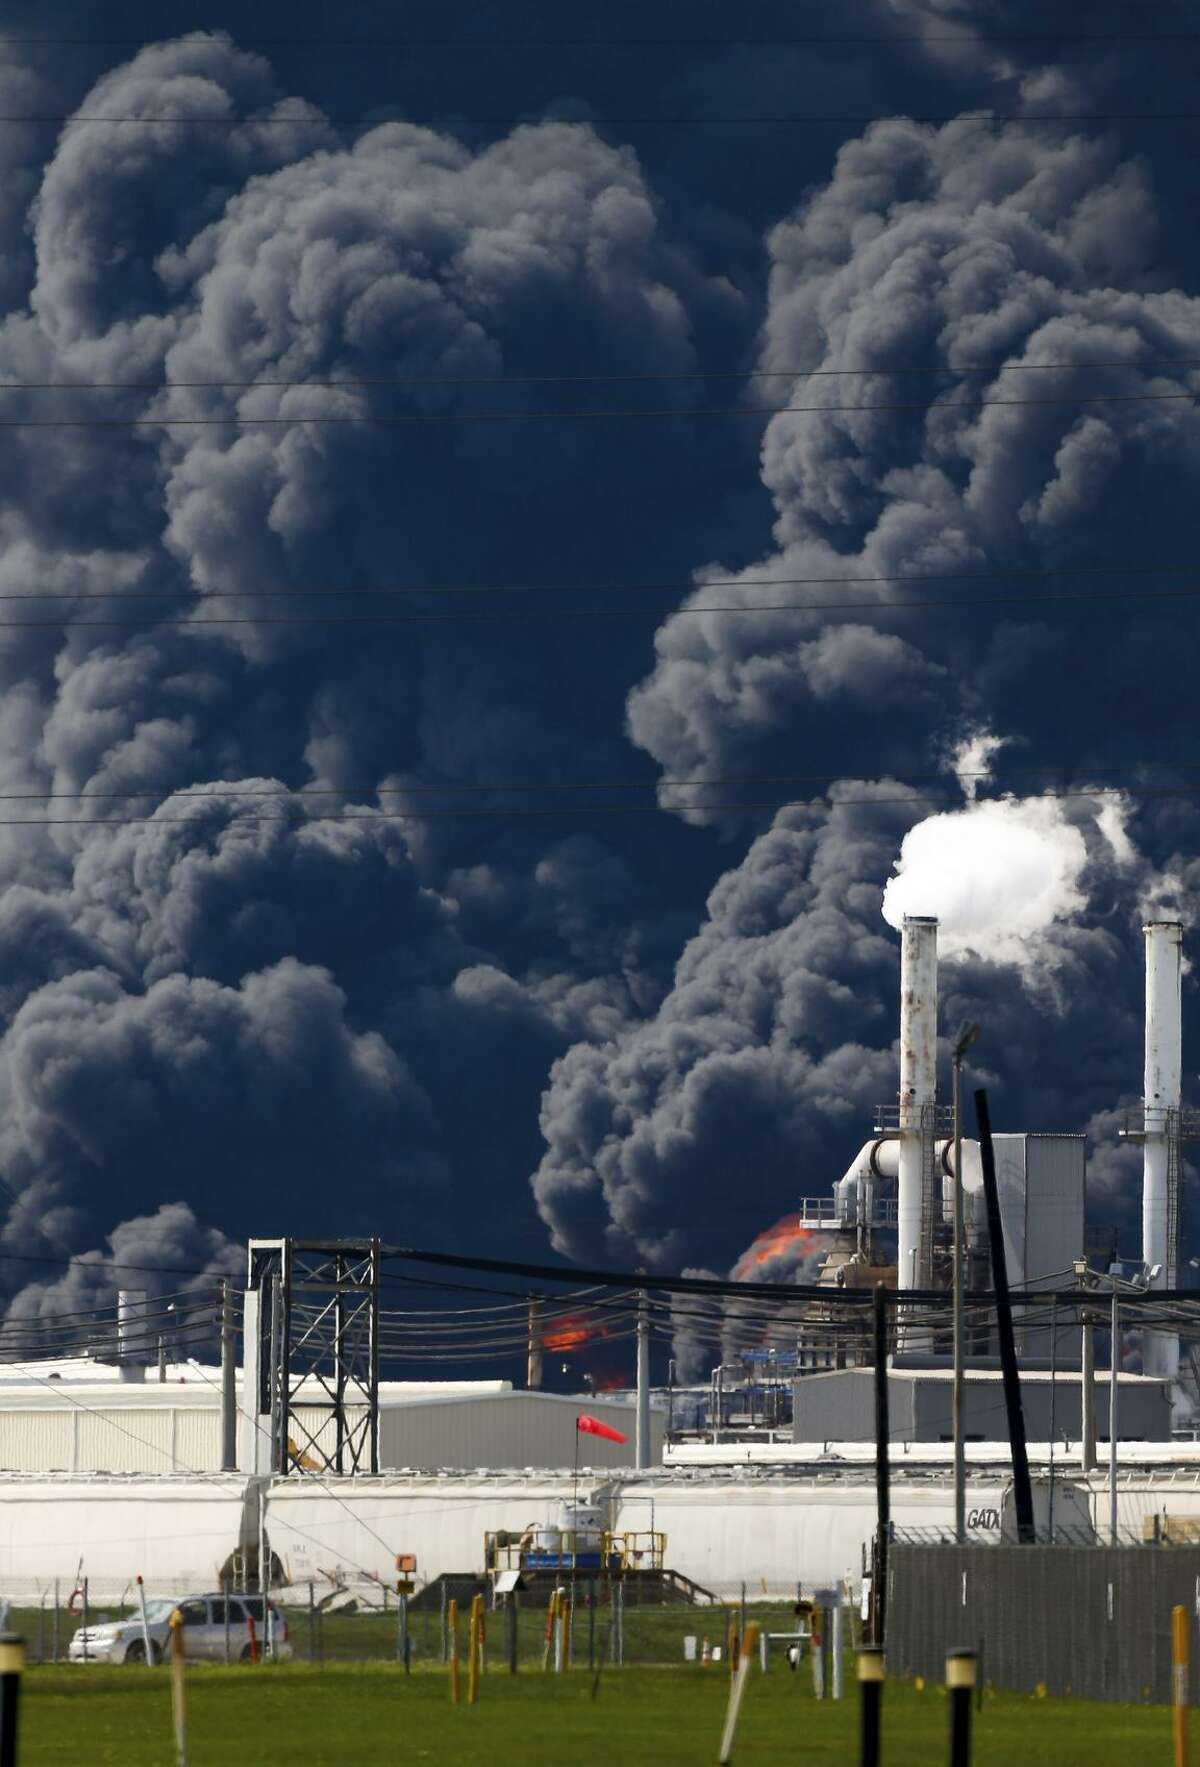 Firefighters continue to battle the petrochemical fire at Intercontinental Terminals Company, which grew in size due to a lack of water pressure last night Tuesday, March 19, 2019, in Deer Park, Texas. (Godofredo A. Vasquez/Houston Chronicle via AP)